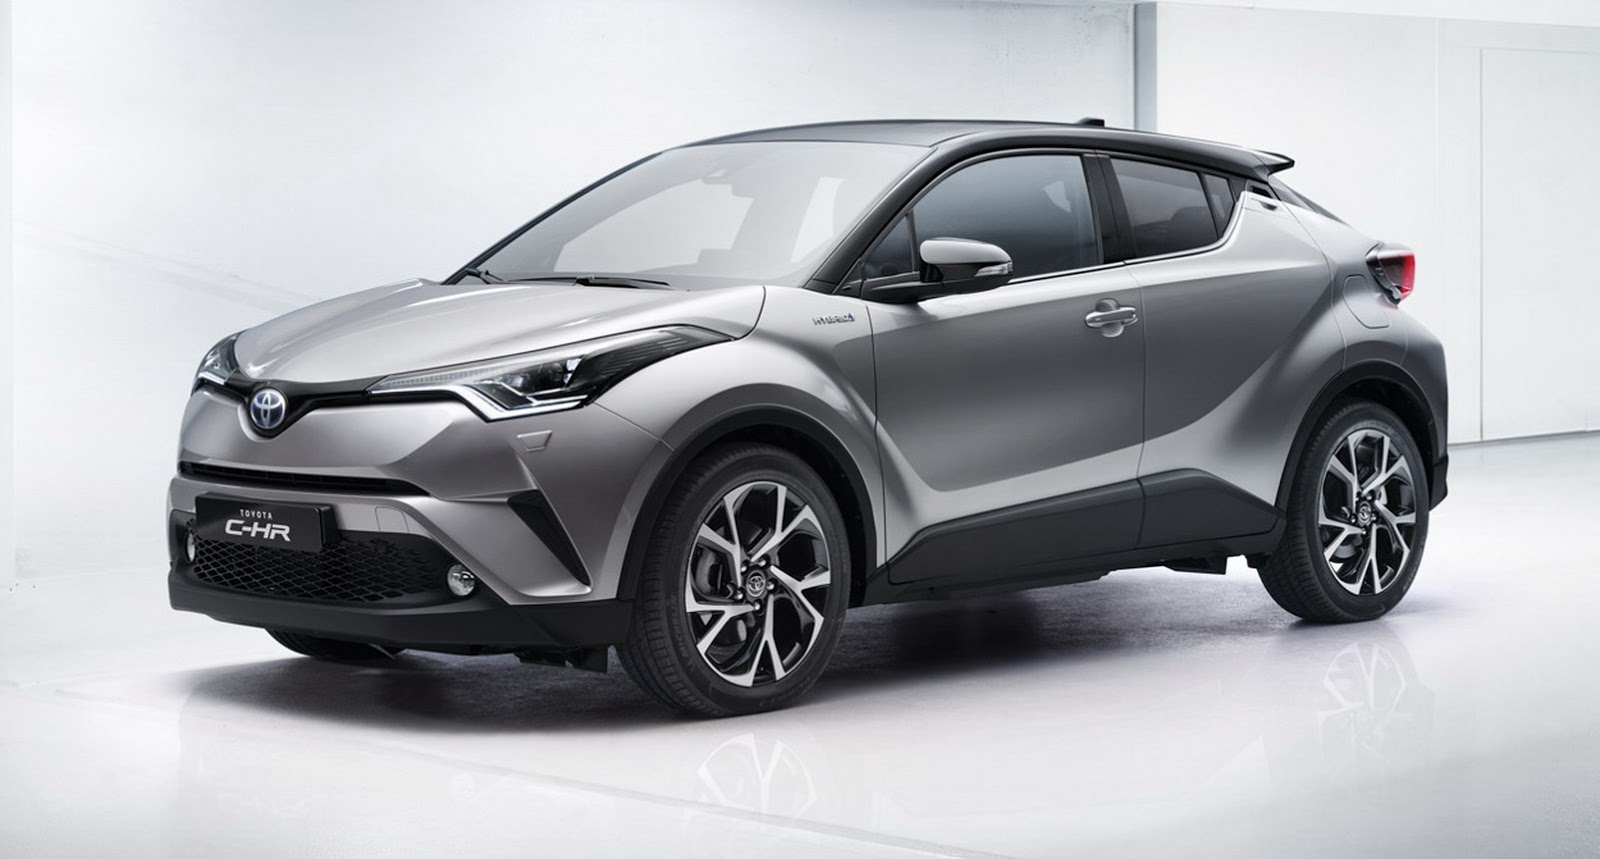 New Toyota CHR Gets 1.2L Turbo, 2.0L And 1.8L Hybrid Powertrains [New